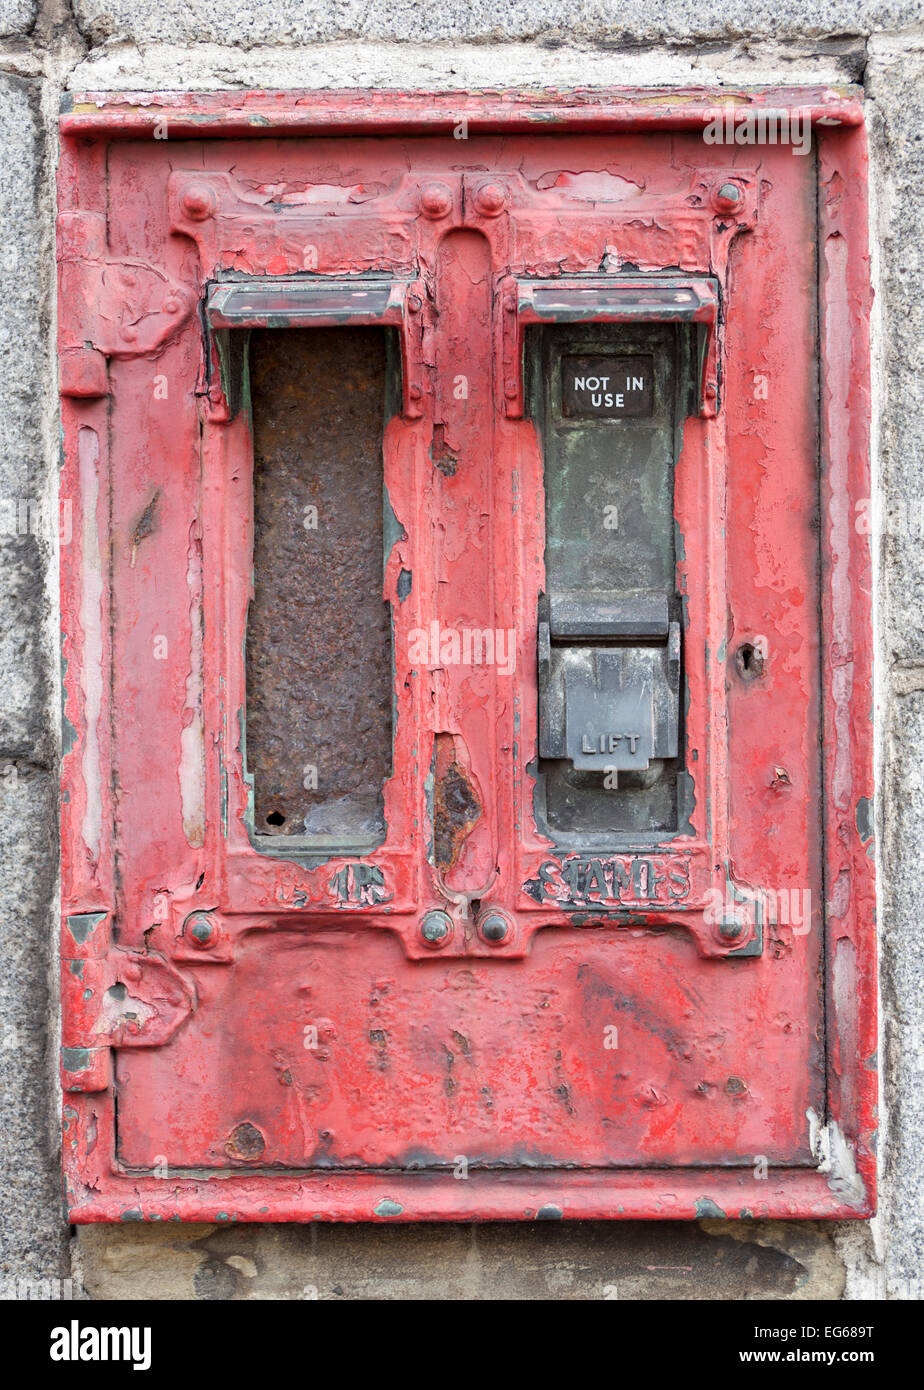 Closeup of Old Stamp Issuing Machine in Wall outside newsagents shop in Aberdeen - Stock Image